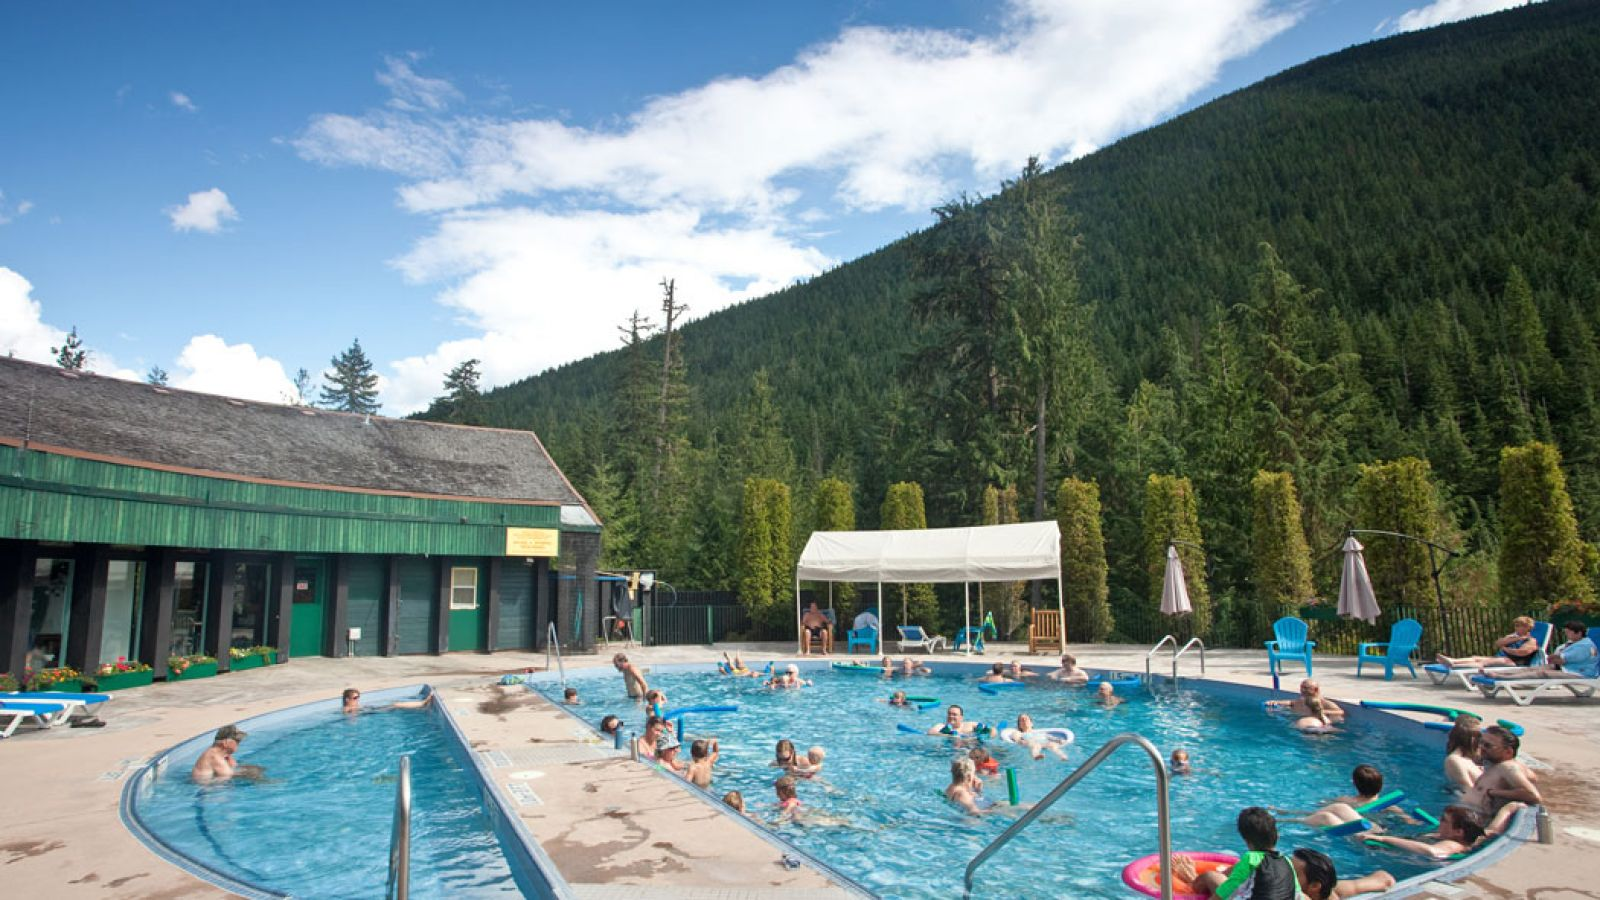 Hot Springs Route Kootenay Rockies Tourism